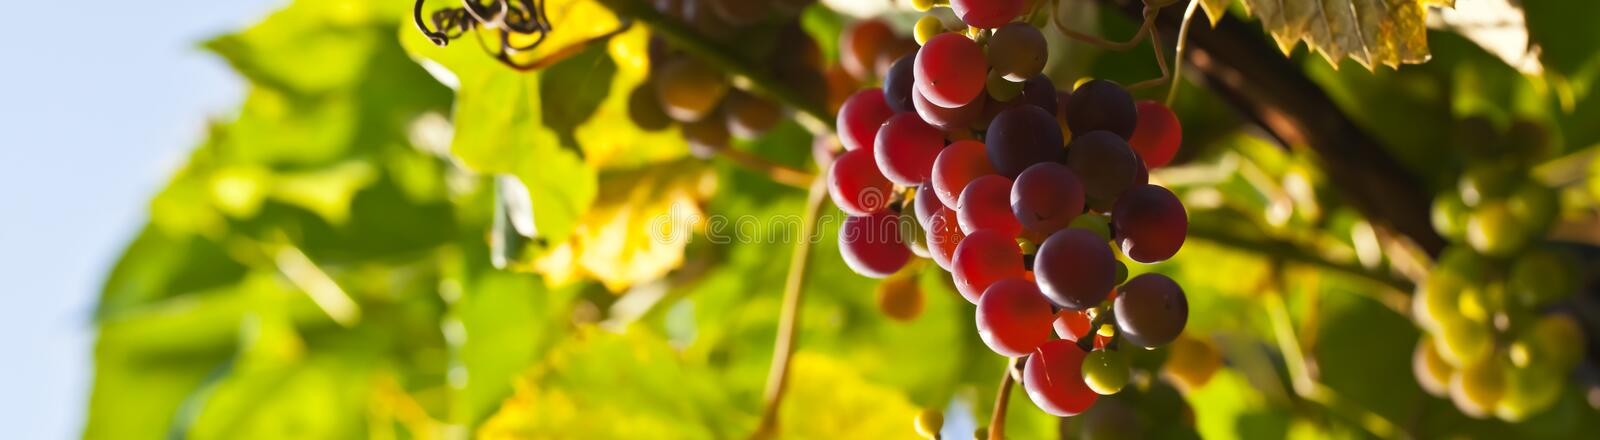 Download Ripe grapes on vine stock photo. Image of fruit, grapes - 26766416